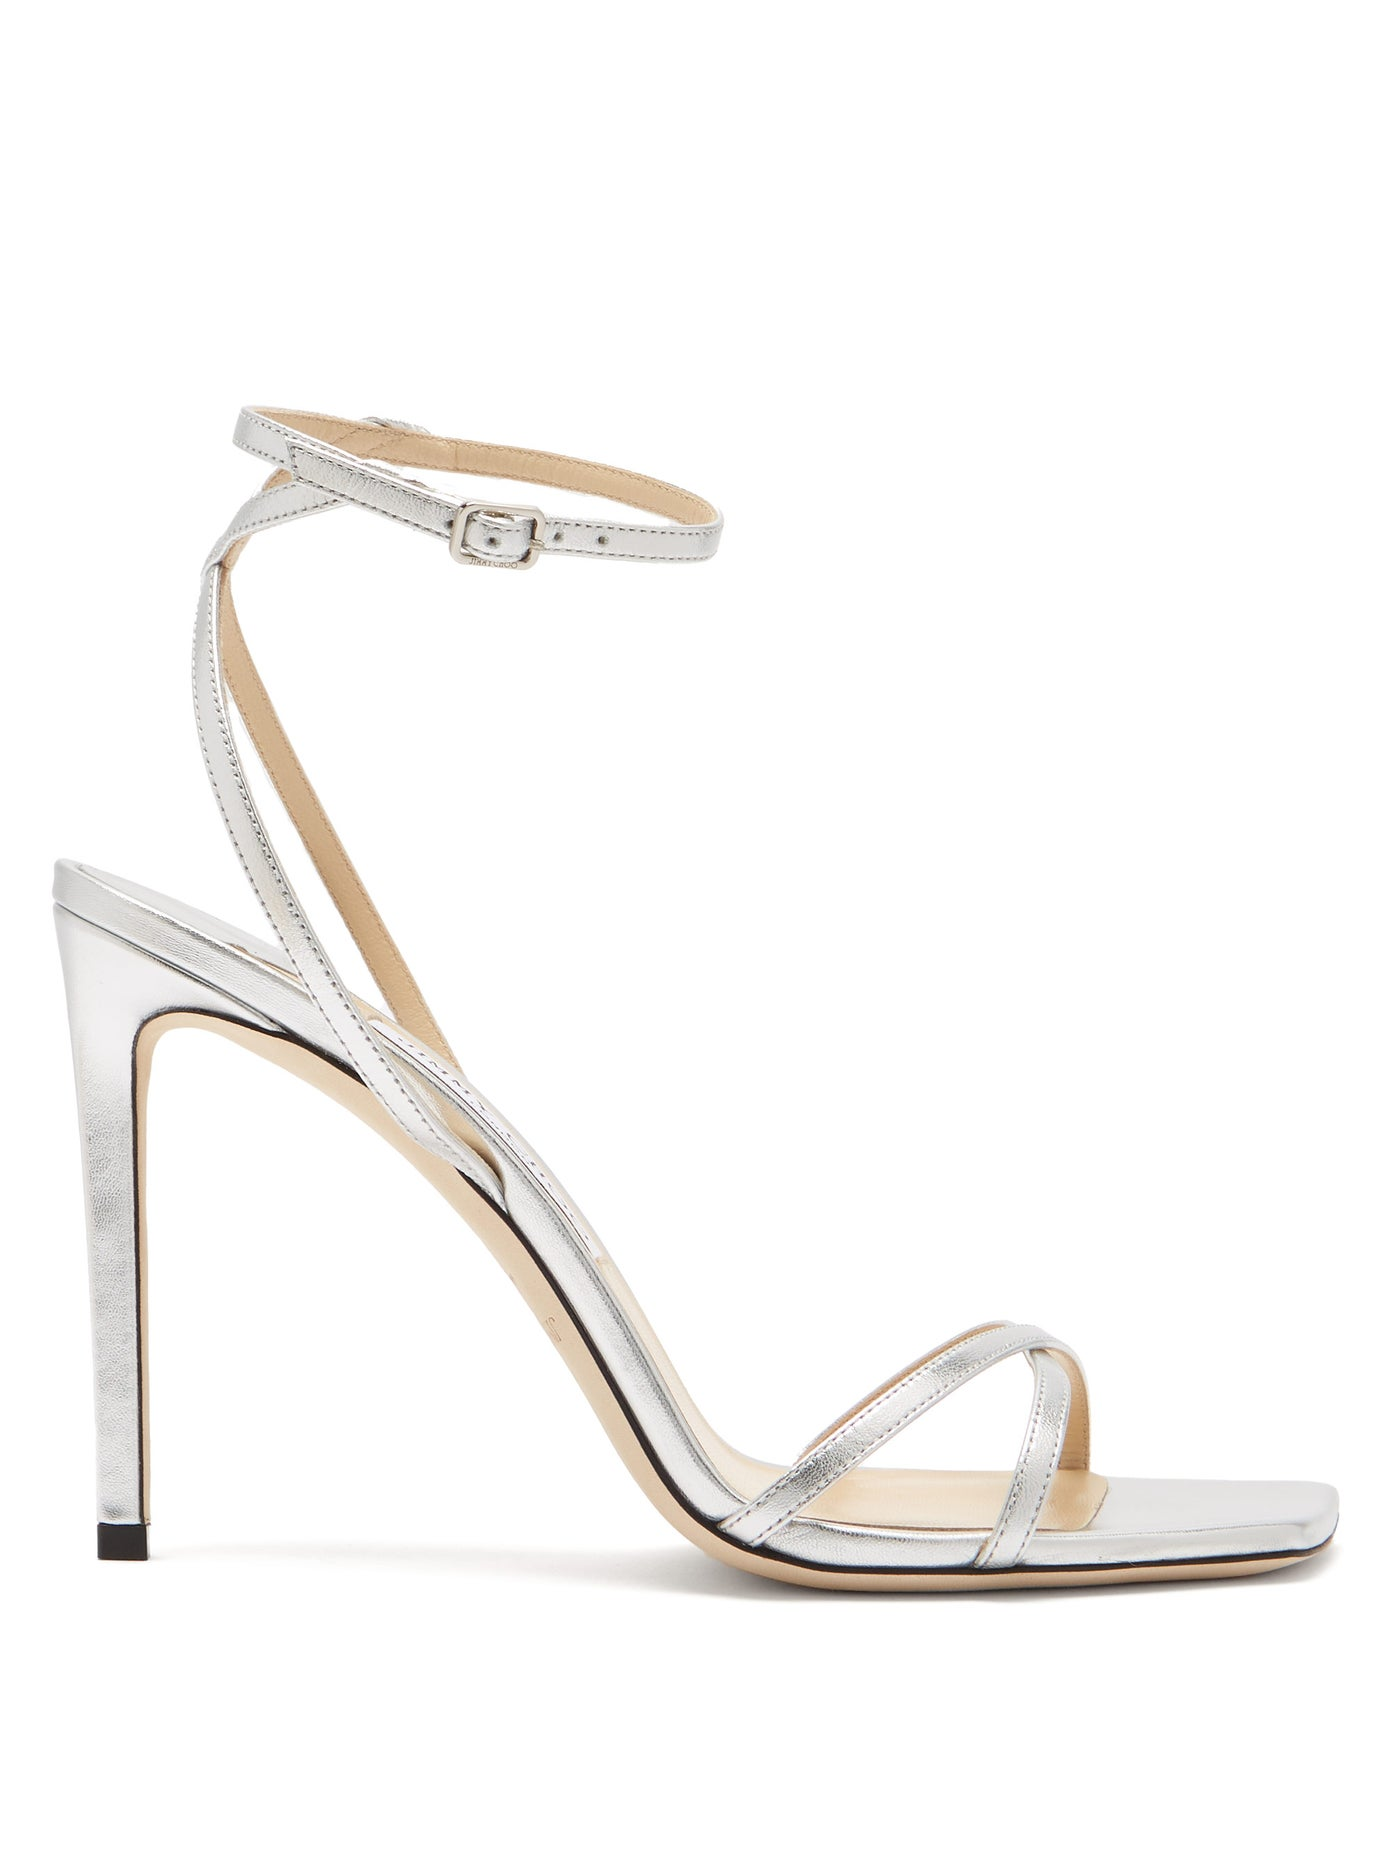 Metz 100 ankle-strap metallic leather sandals by Jimmy Choo, available on matchesfashion.com for $300 Kylie Jenner Shoes Exact Product